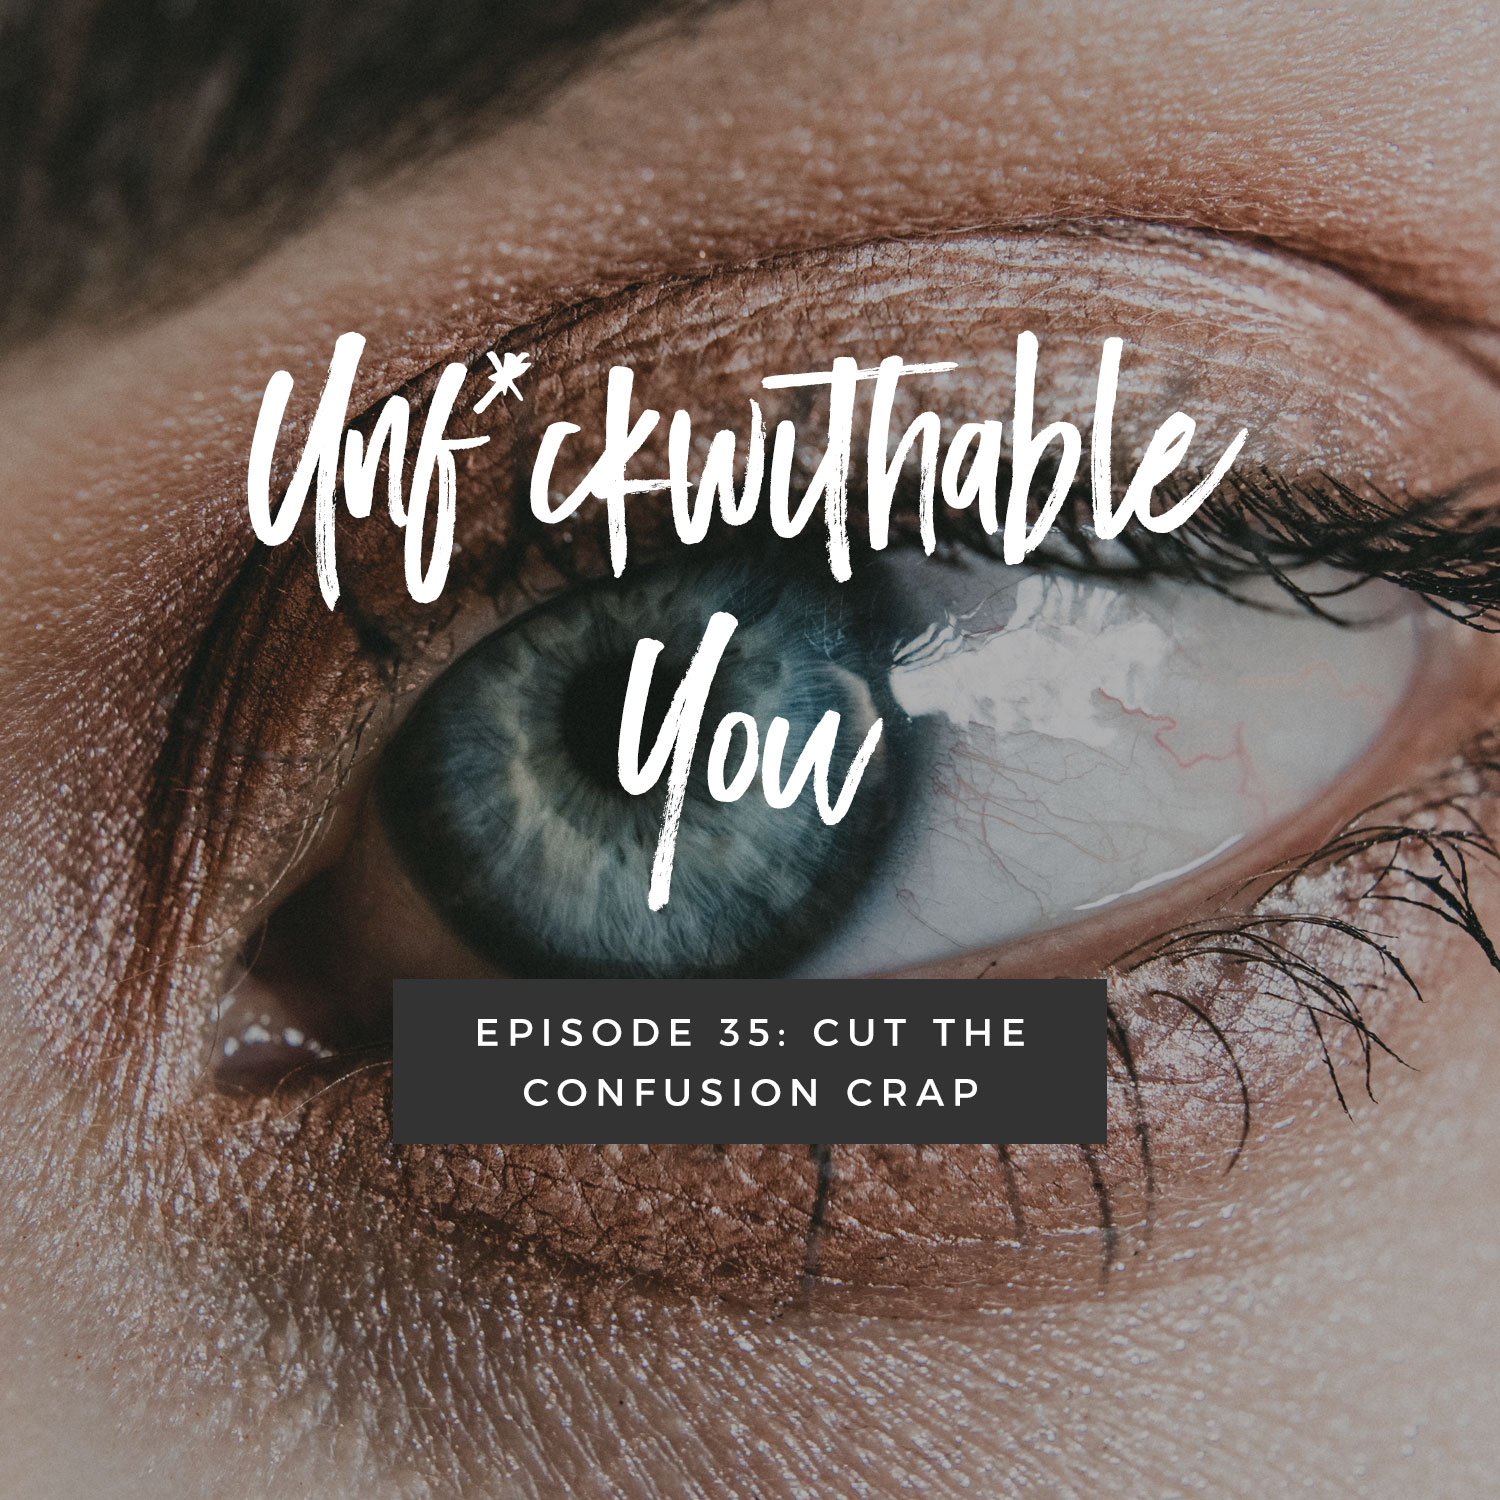 Unf*ckwithable You Episode 35: Cut The Confusion Crap